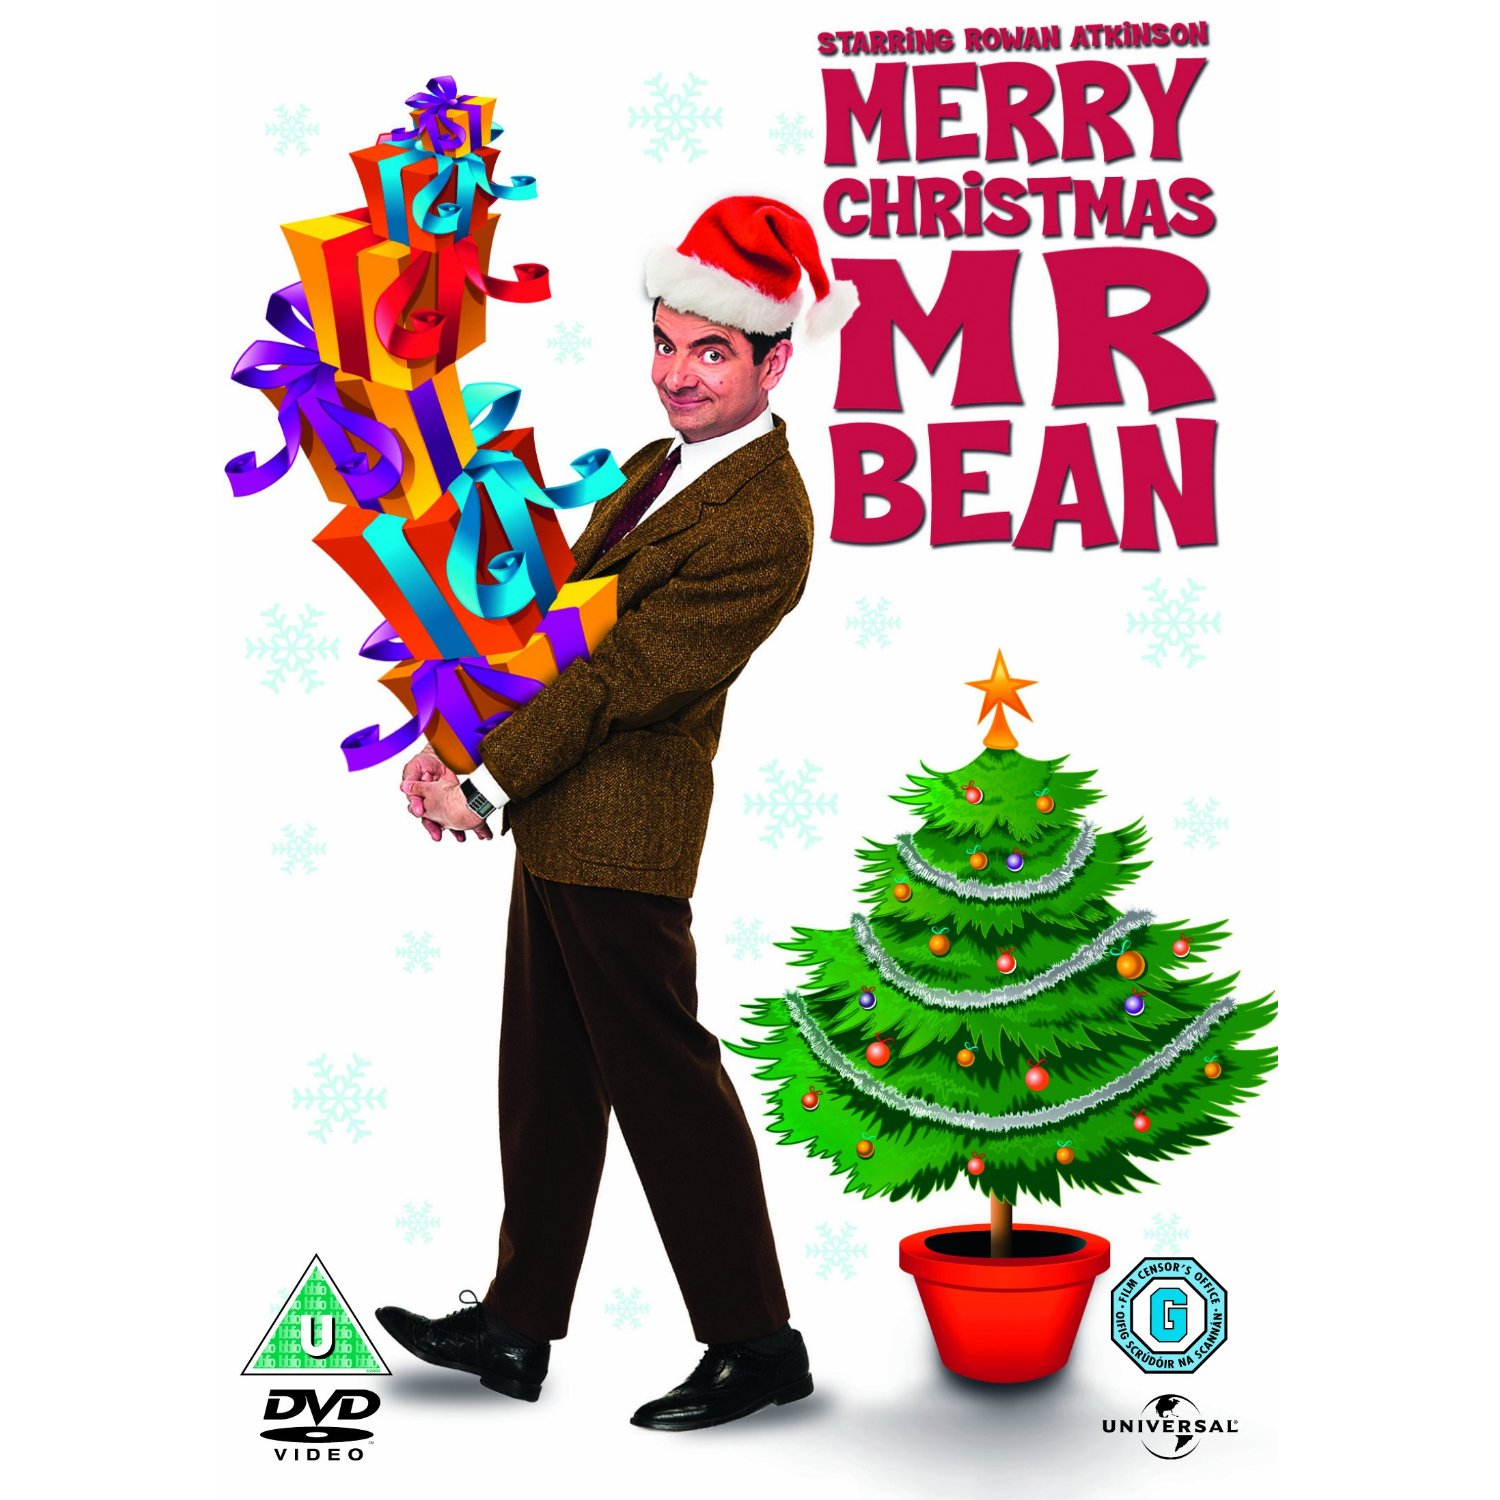 ... : Film #12 - Merry Christmas Mr Bean & Film #13 - Home Alone 2